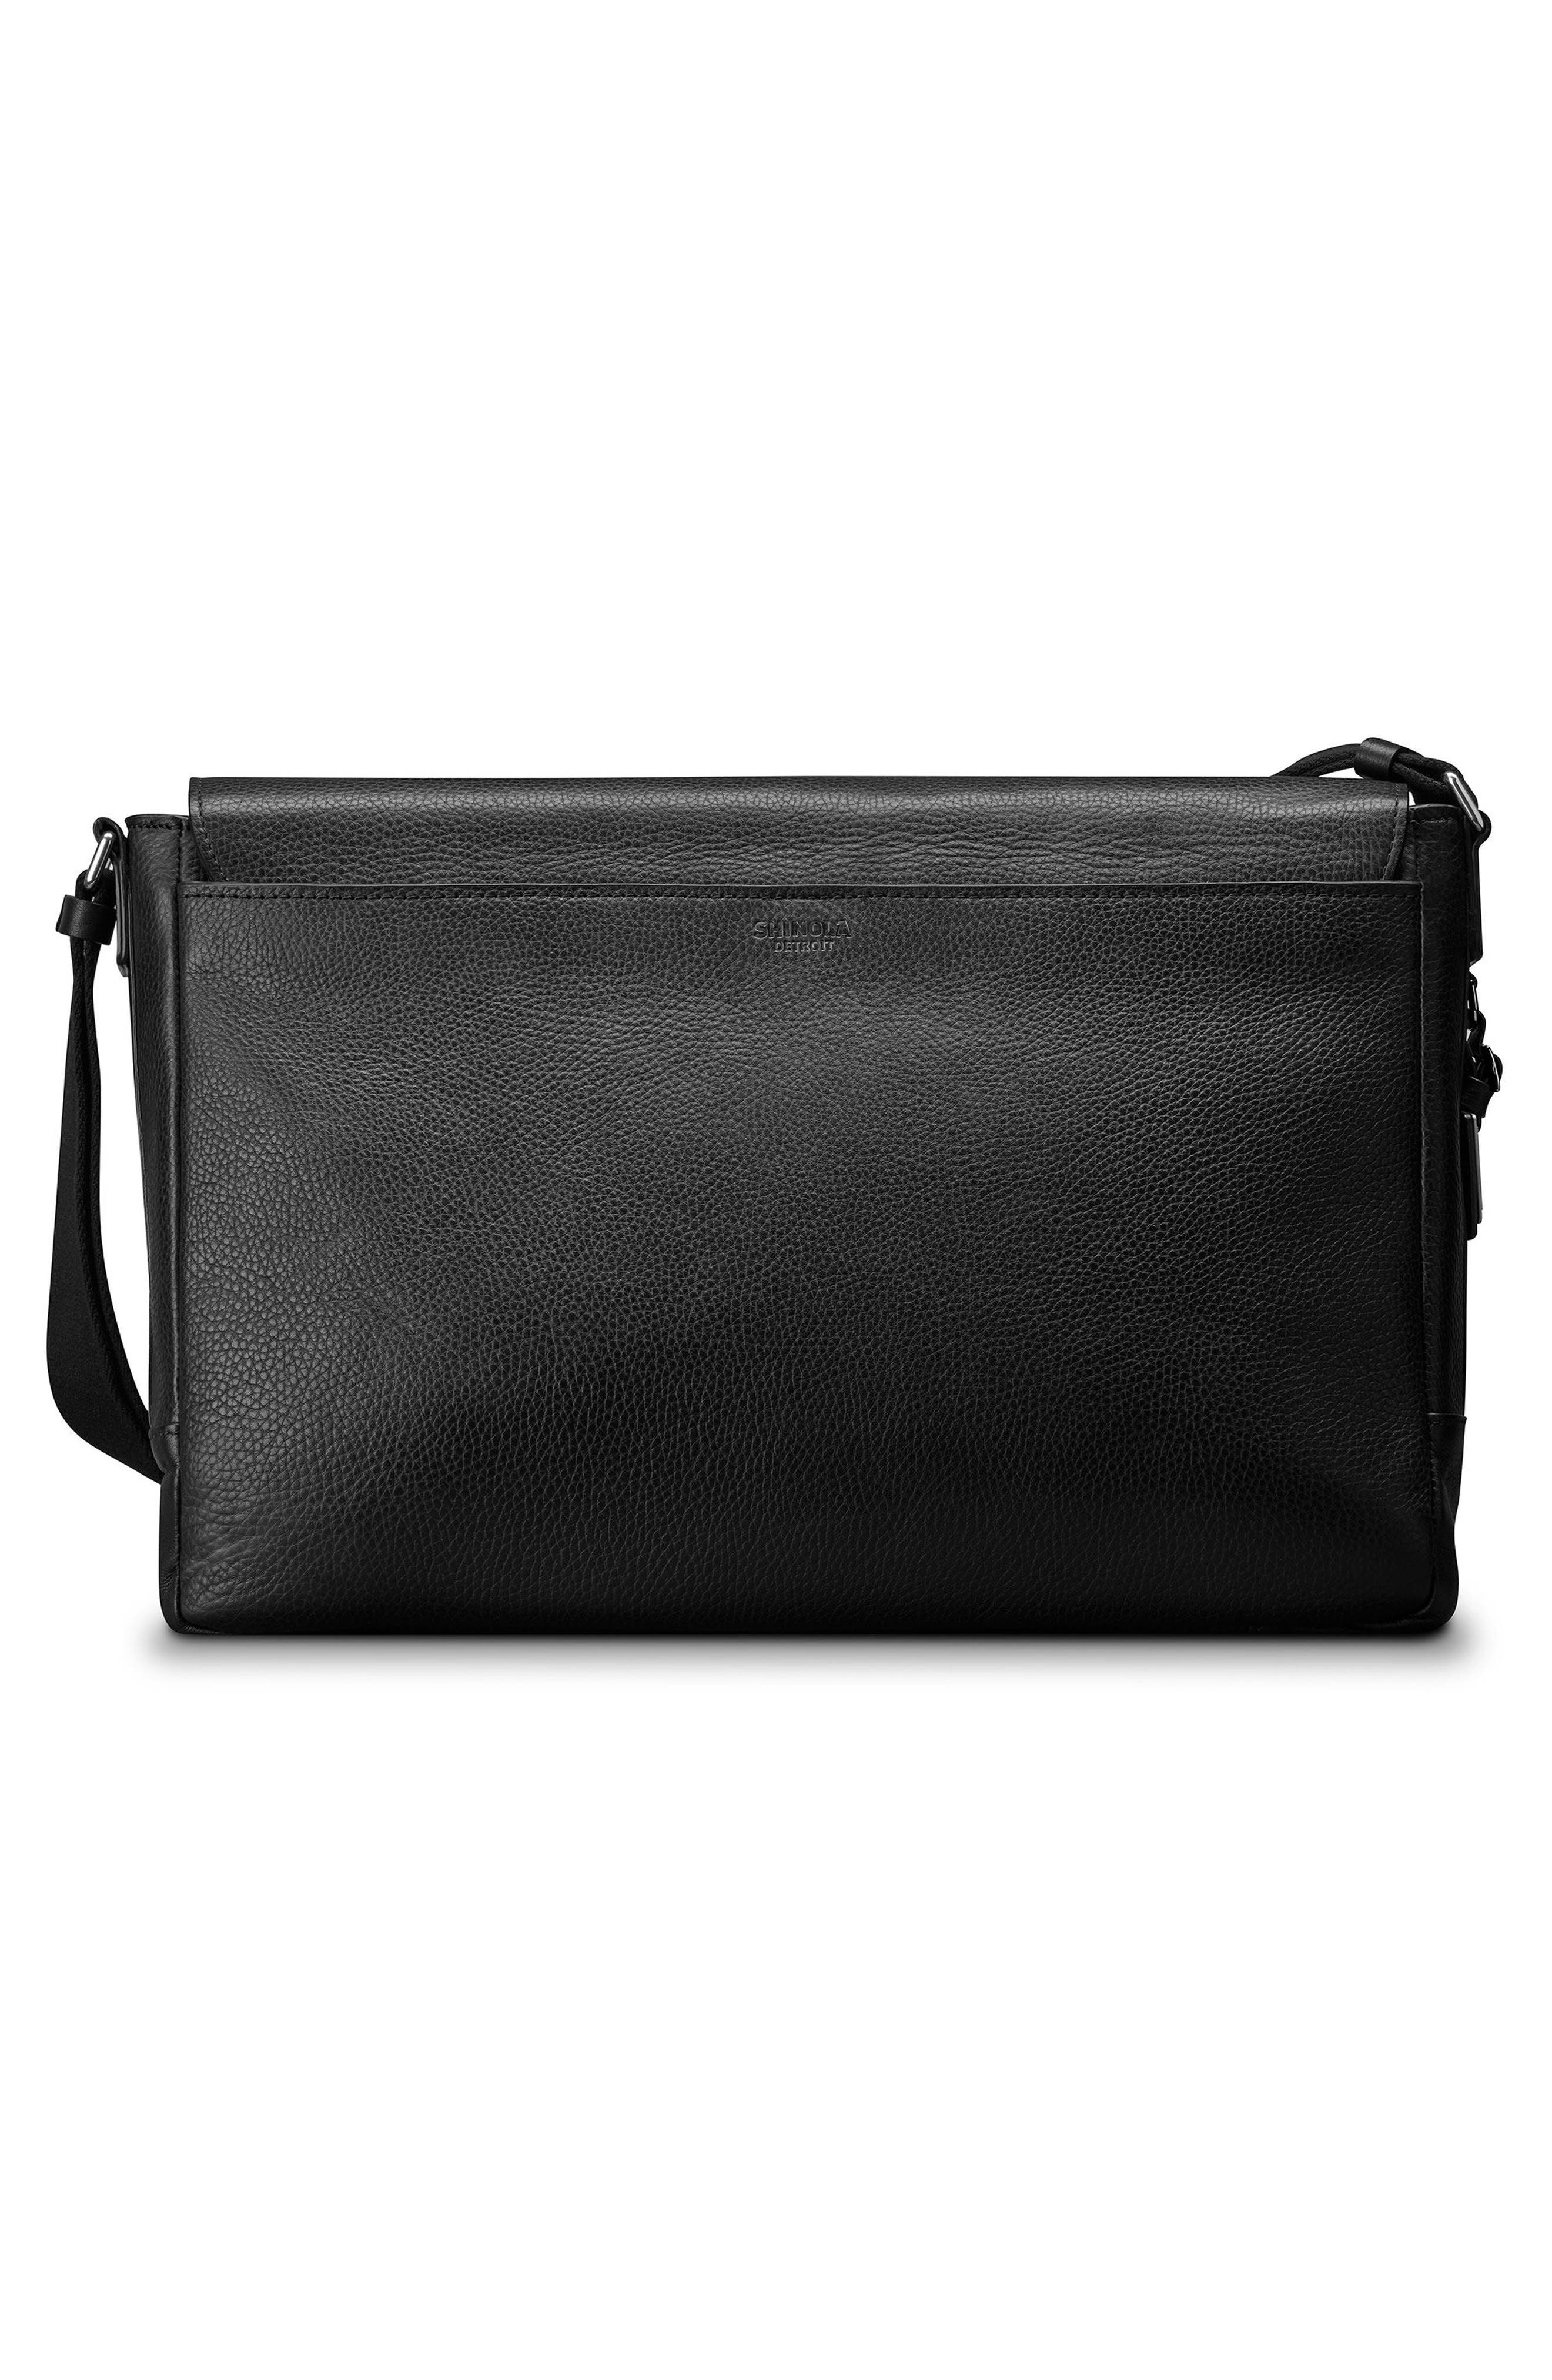 Luxe Grain Canfield Leather Messenger Bag,                             Alternate thumbnail 2, color,                             Black